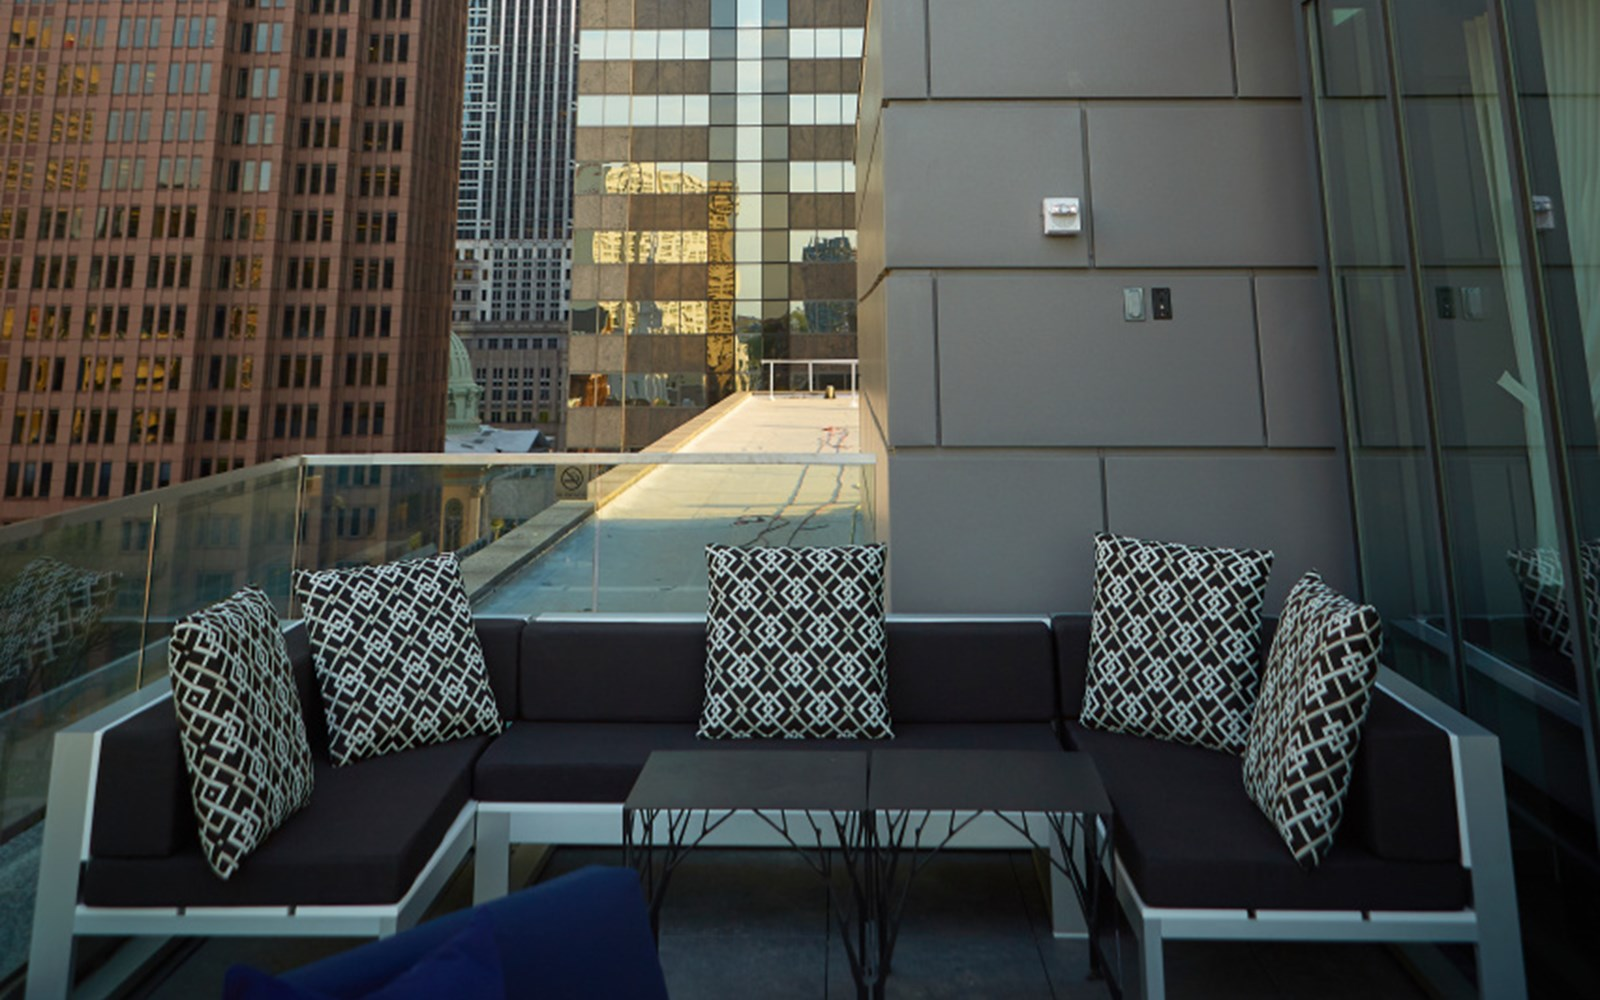 Assembly Rooftop bar and lounge with views of Philadelphia